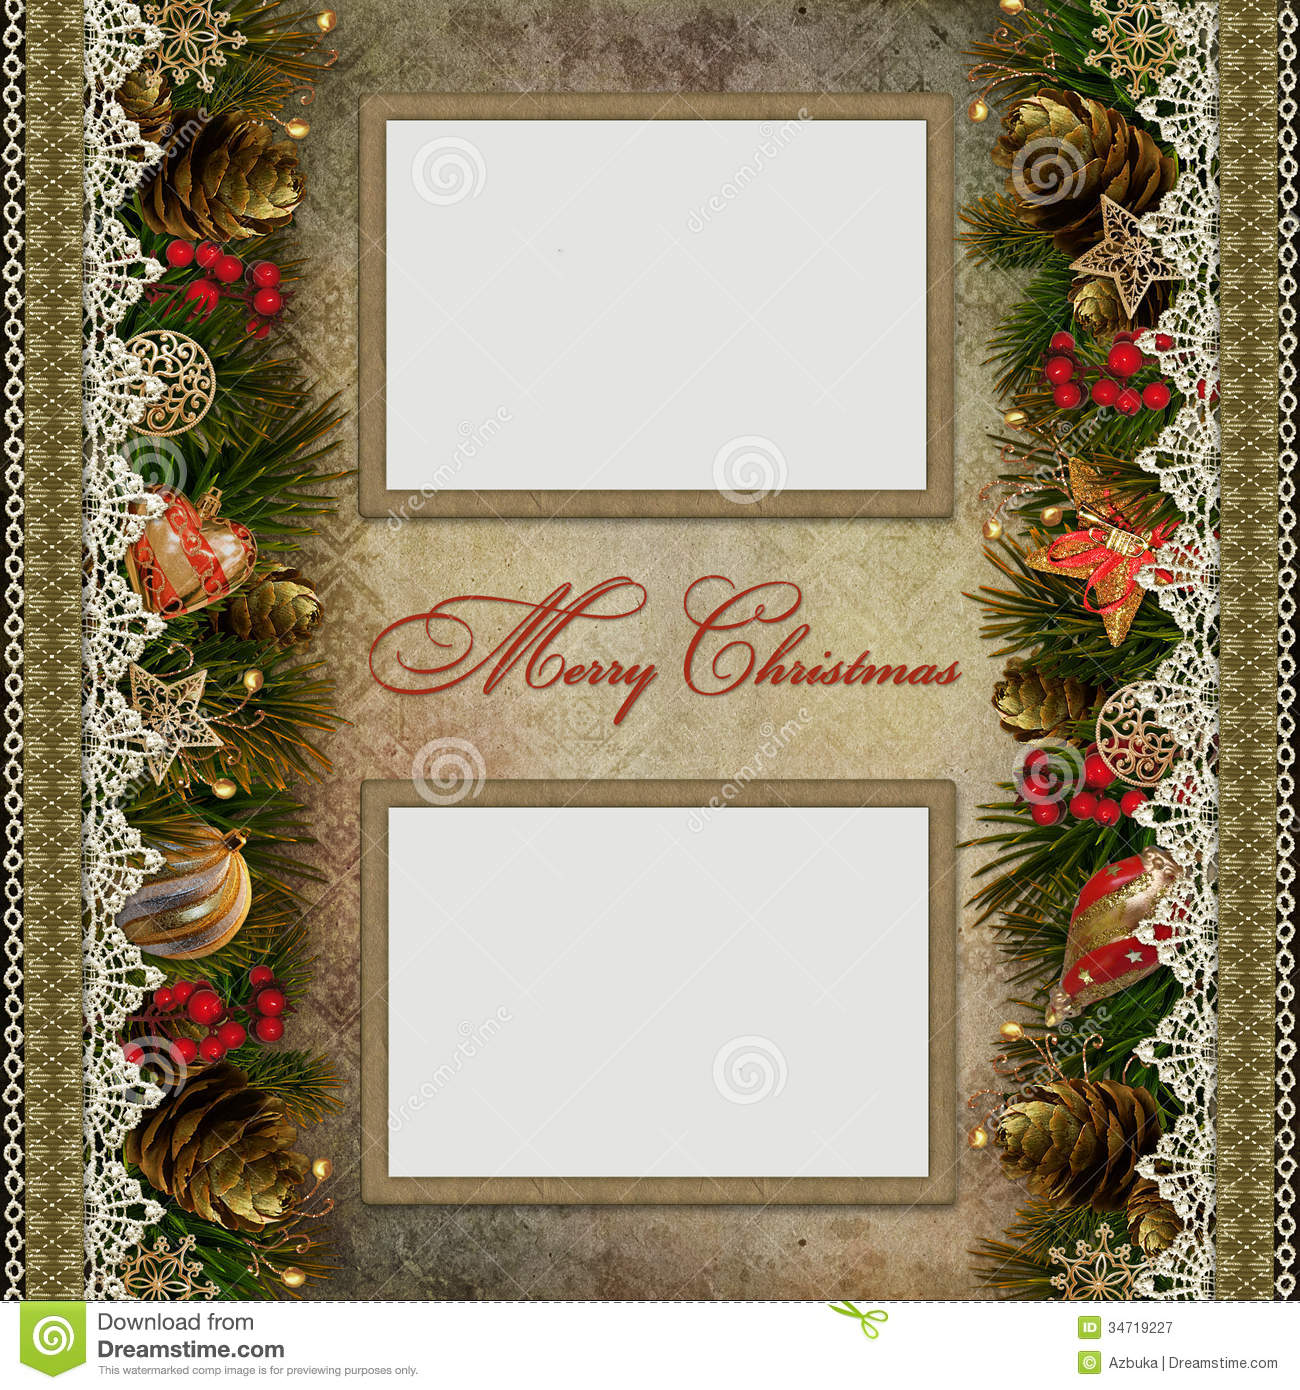 Christmas Decorations With Lace And Frames On Vint Stock